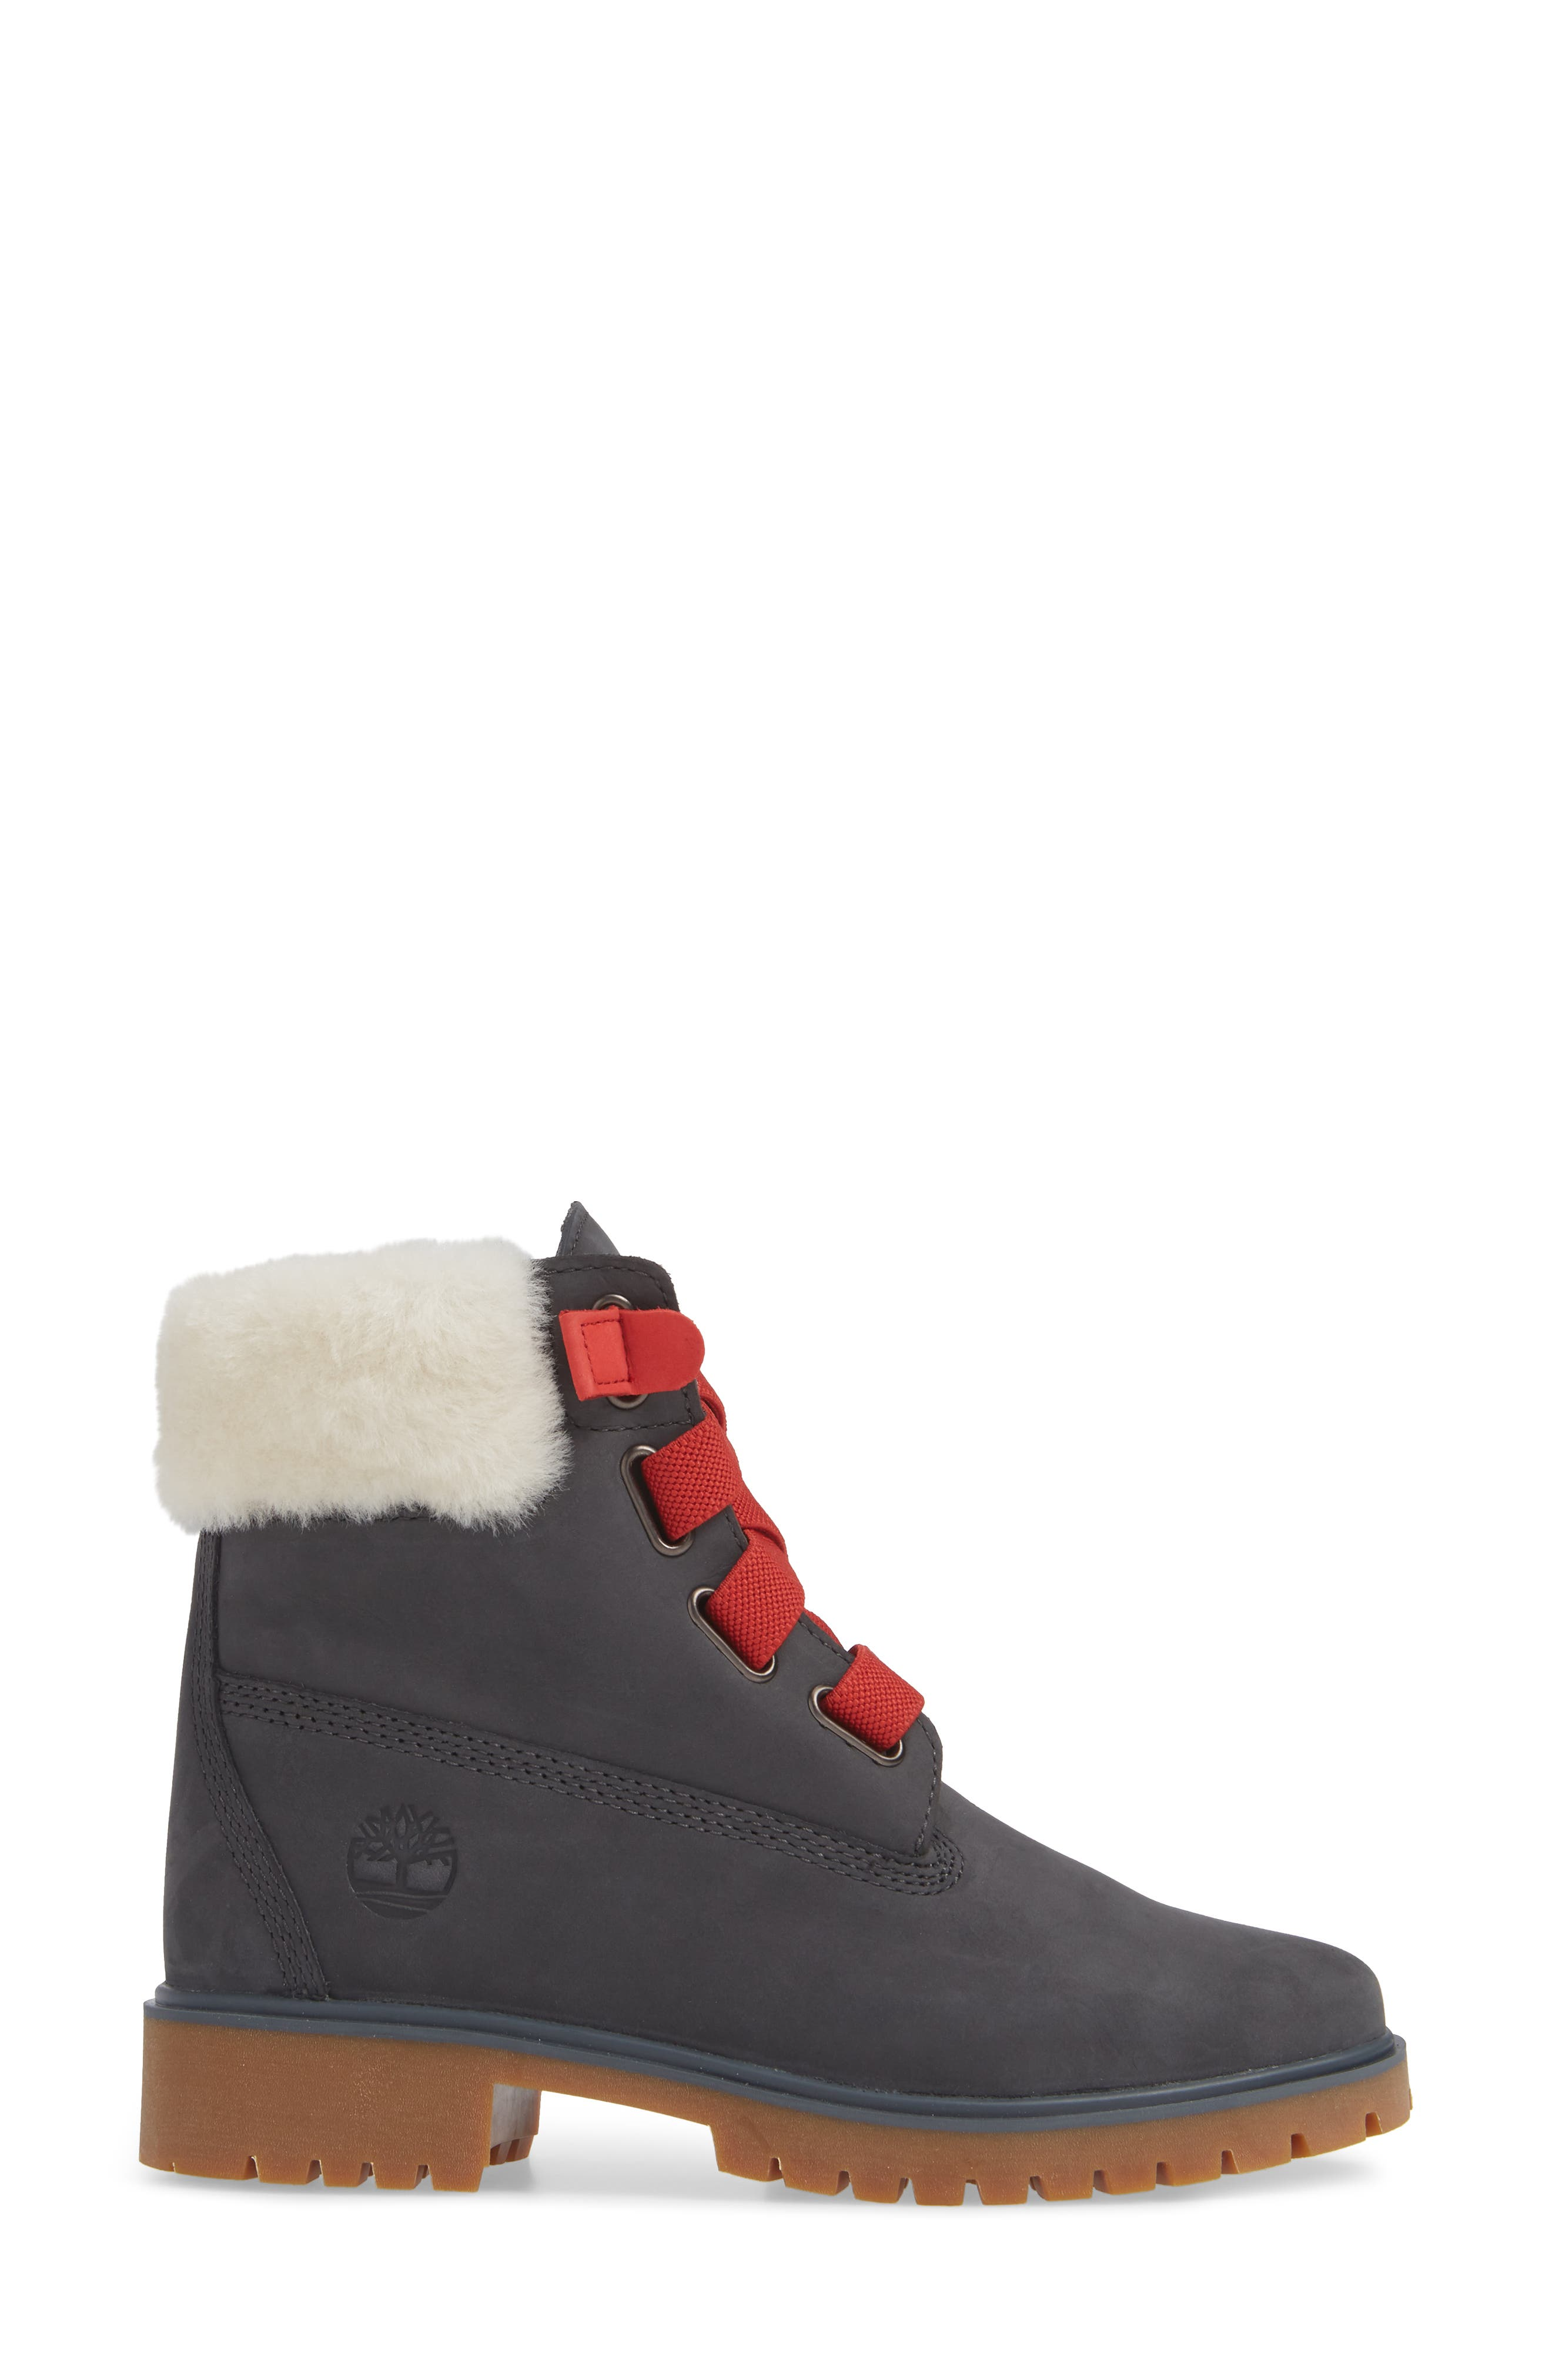 Convenience Waterproof Boot with Genuine Shearling Trim,                             Alternate thumbnail 3, color,                             065